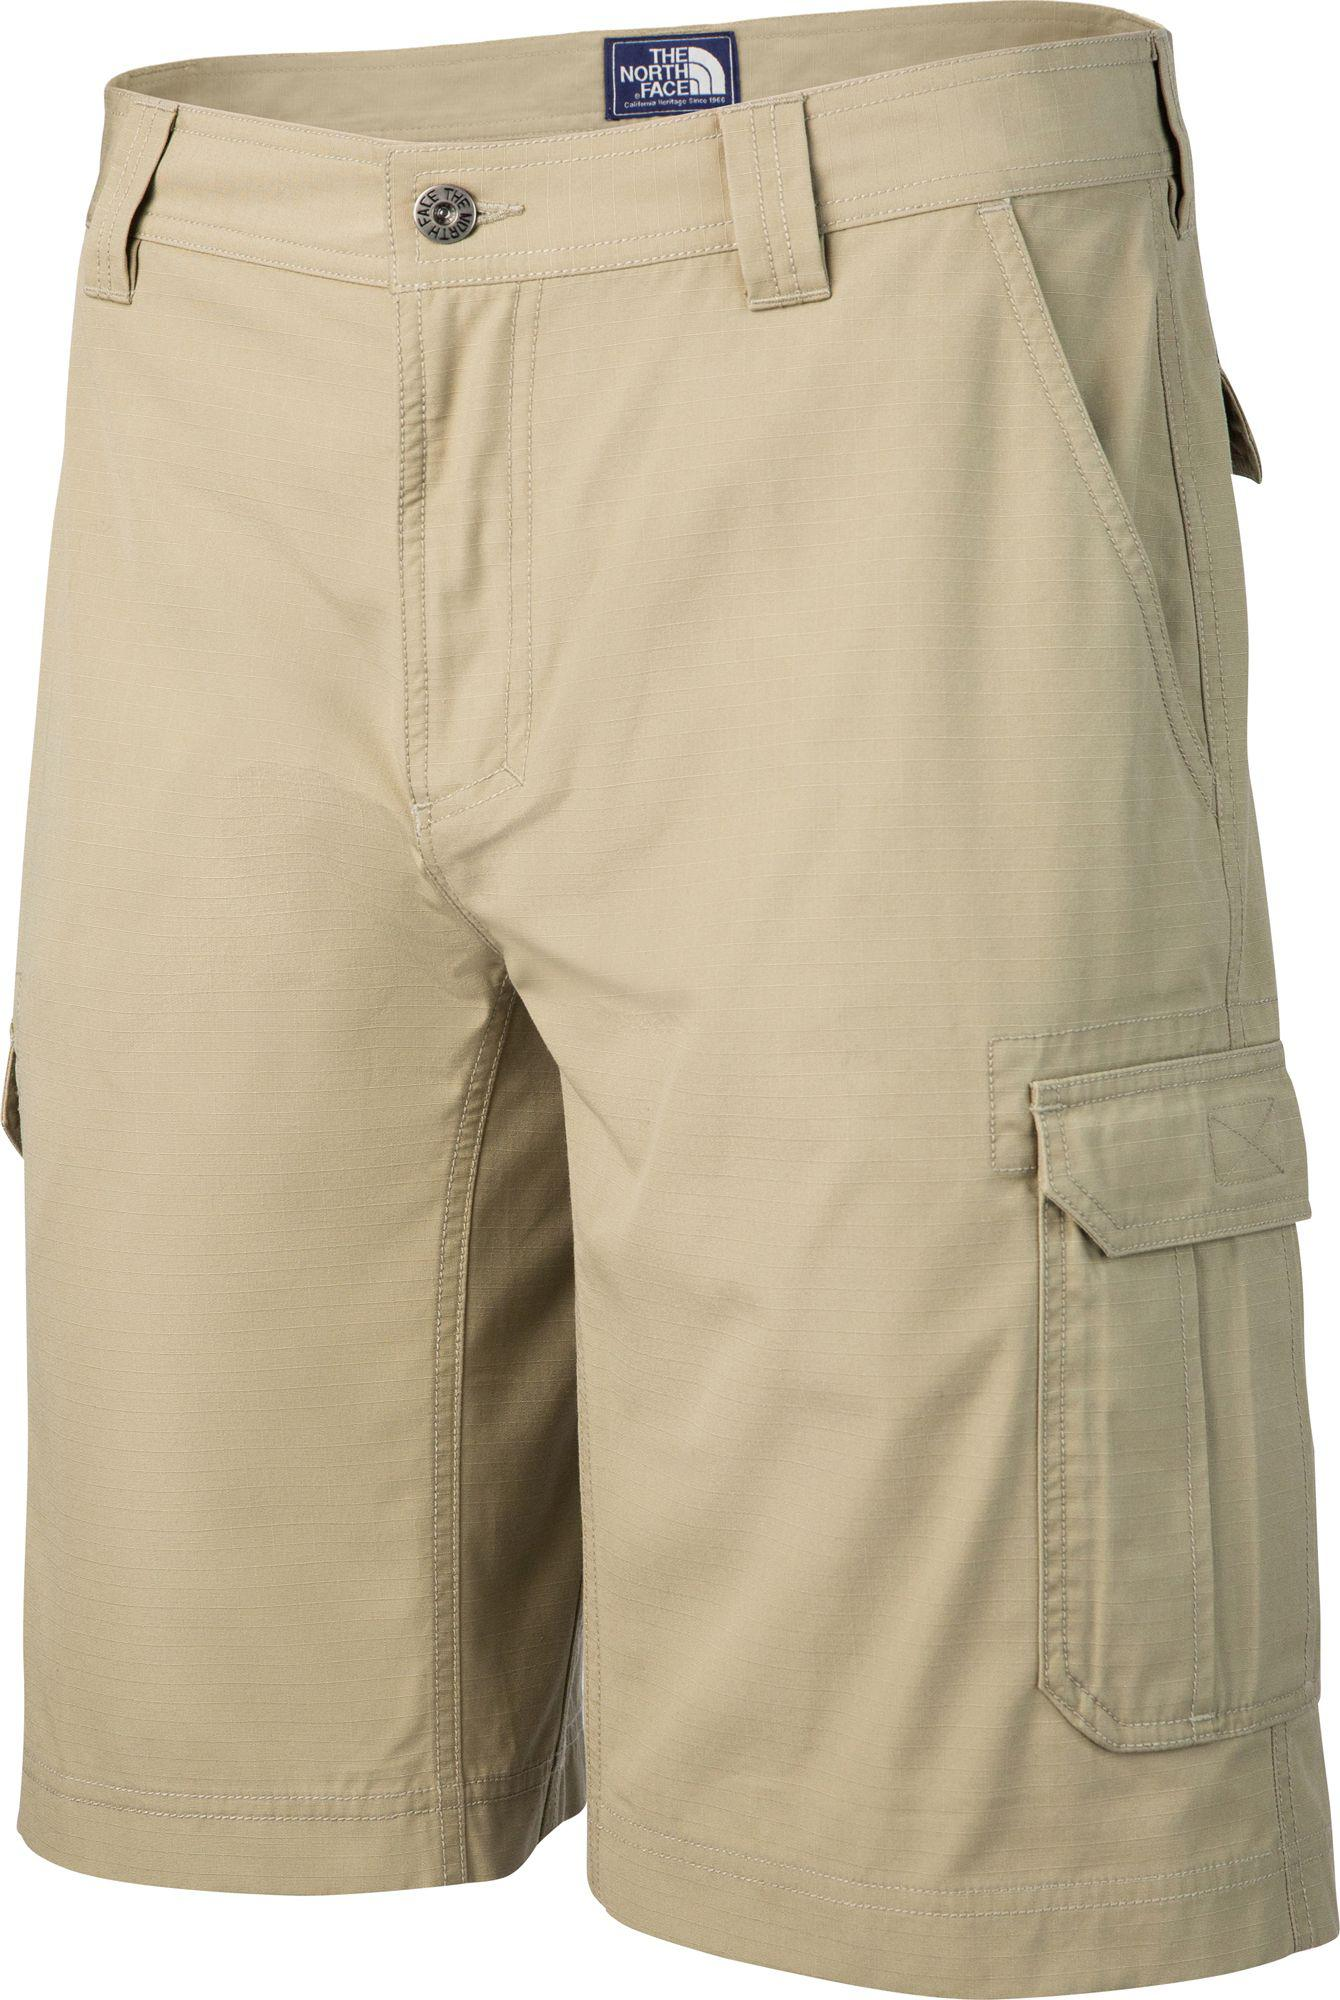 a4691412c6 Lyst - The North Face Tribe Cargo Shorts in Natural for Men